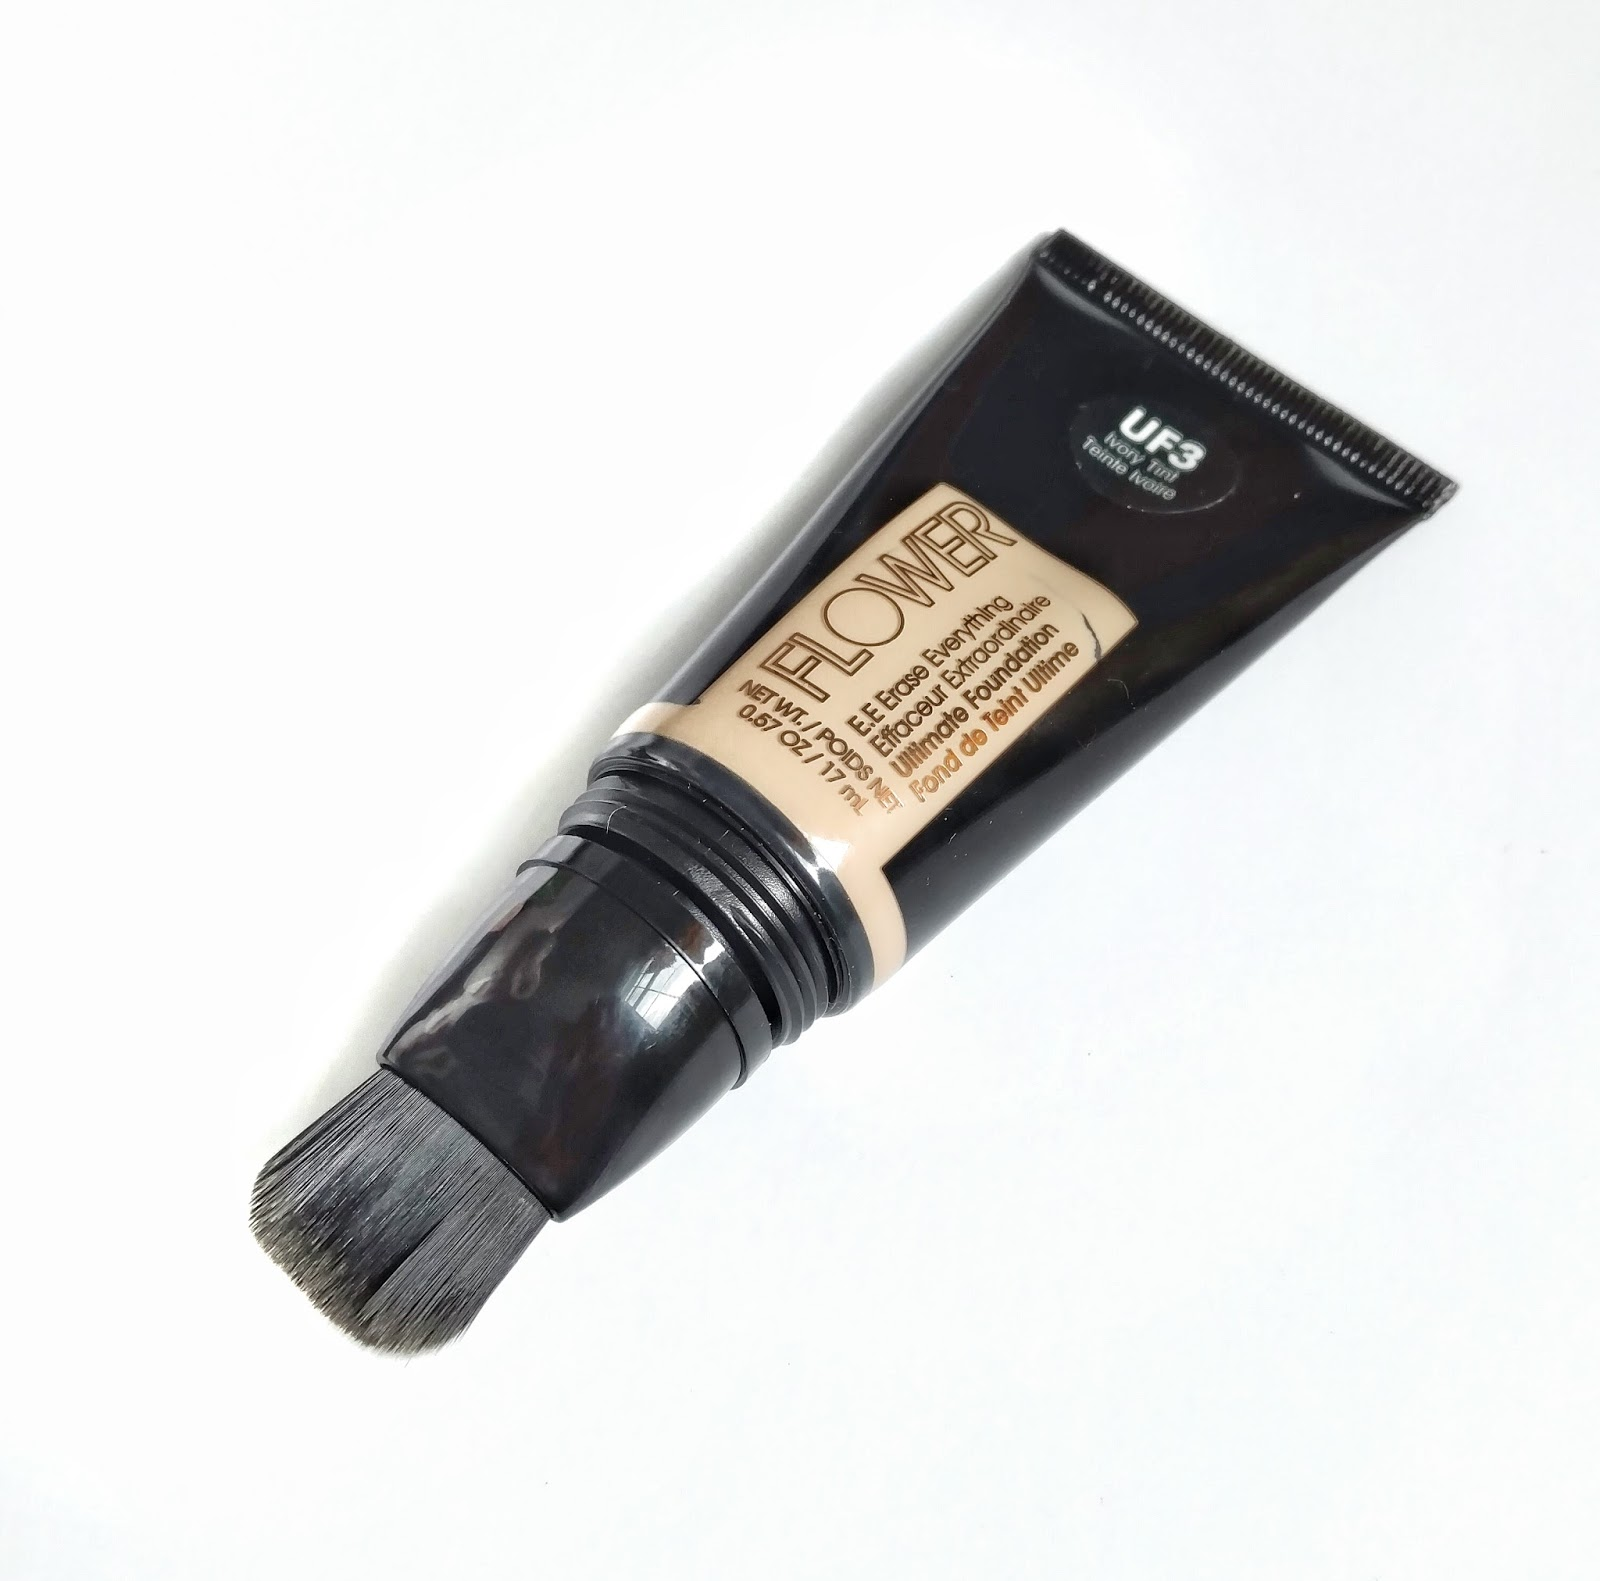 Flower beauty ee erase everything ultimate foundation review the flower beauty ee erase everything review izmirmasajfo